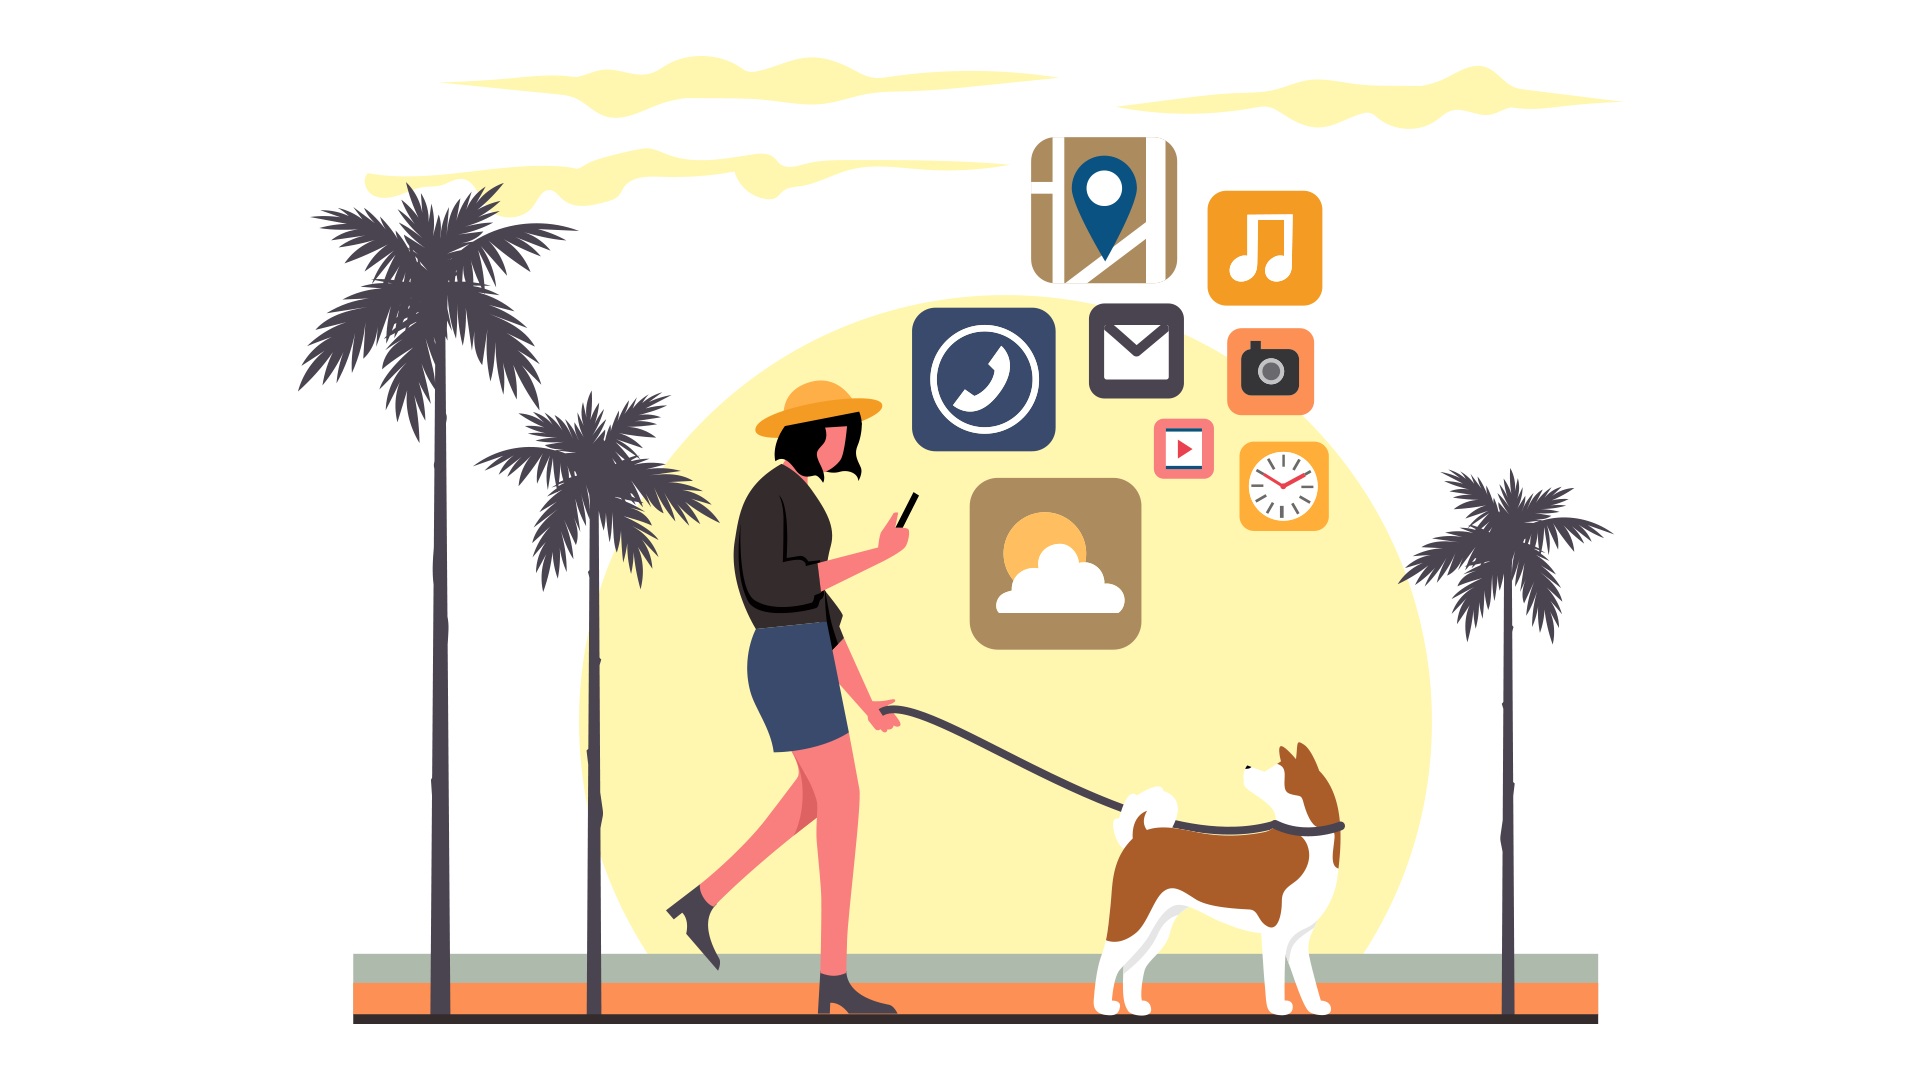 The creation of a dog walking application should cover three users' groups: dog owners, walkers, and service admins.